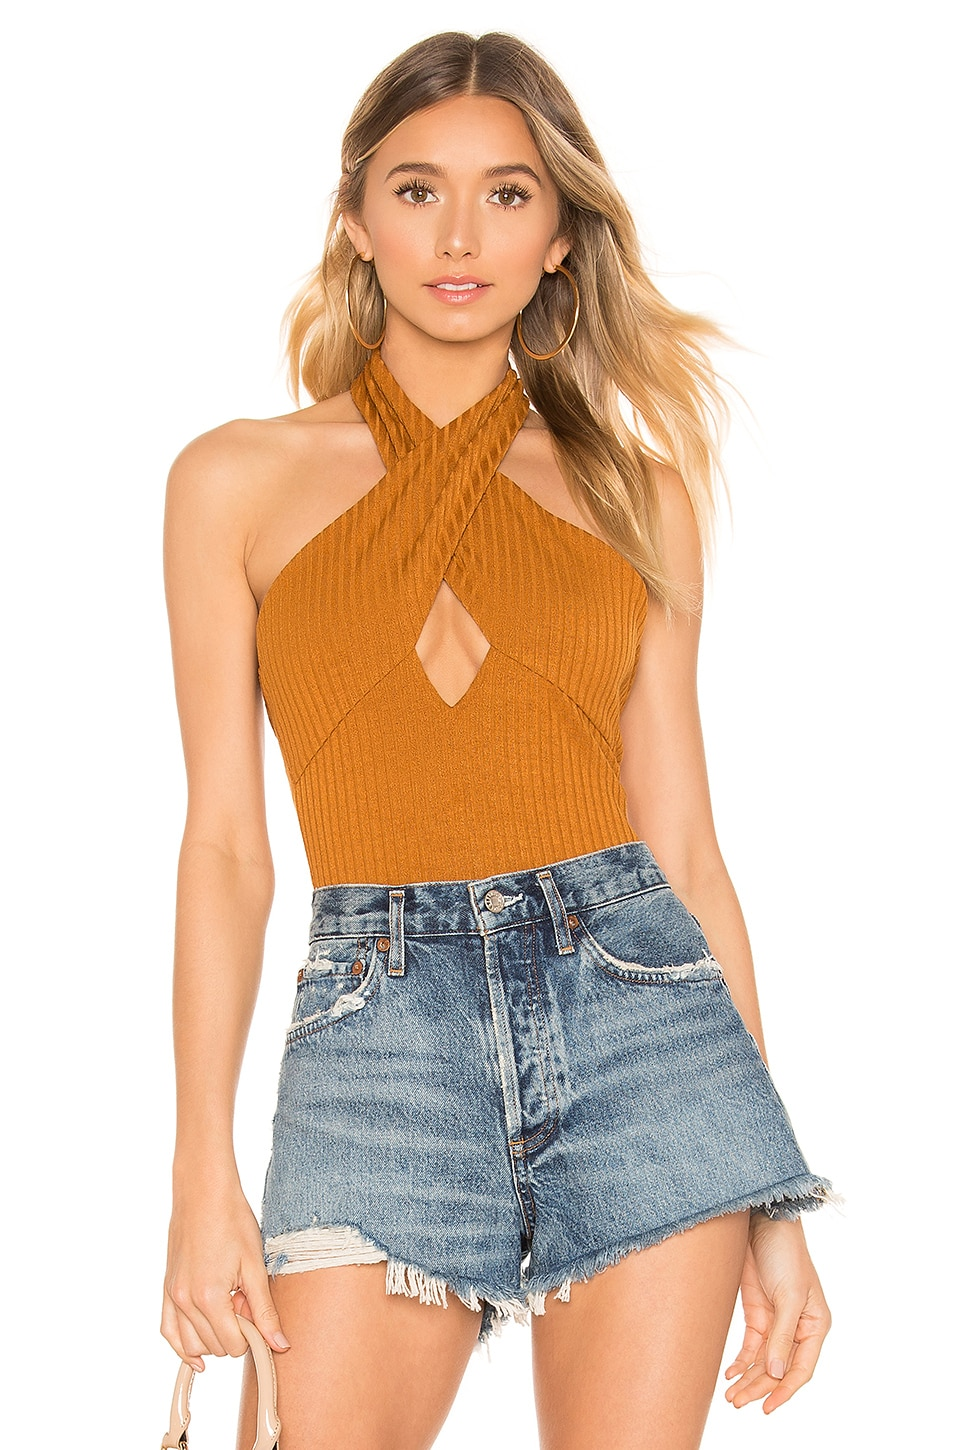 House of Harlow 1960 House of Harlow x Revolve 1960 Linde Bodysuit in Toffee